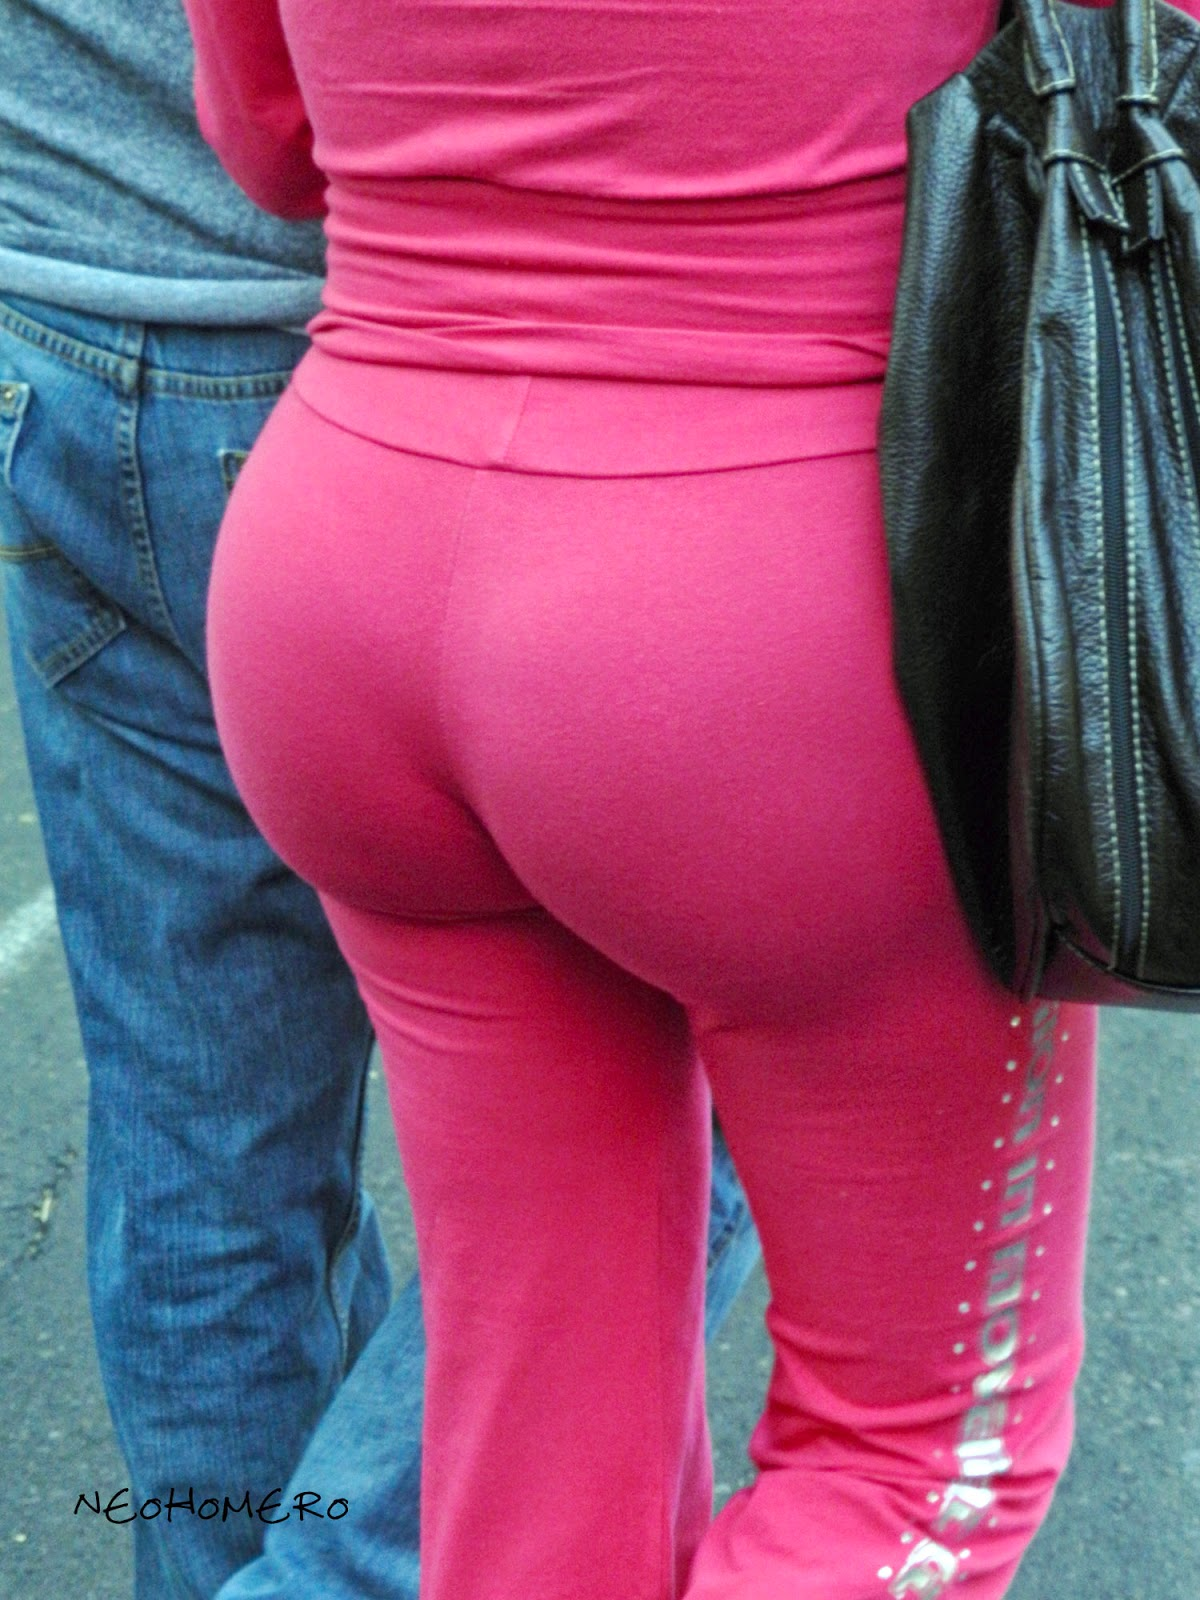 racy photots of mature women in yoga pants